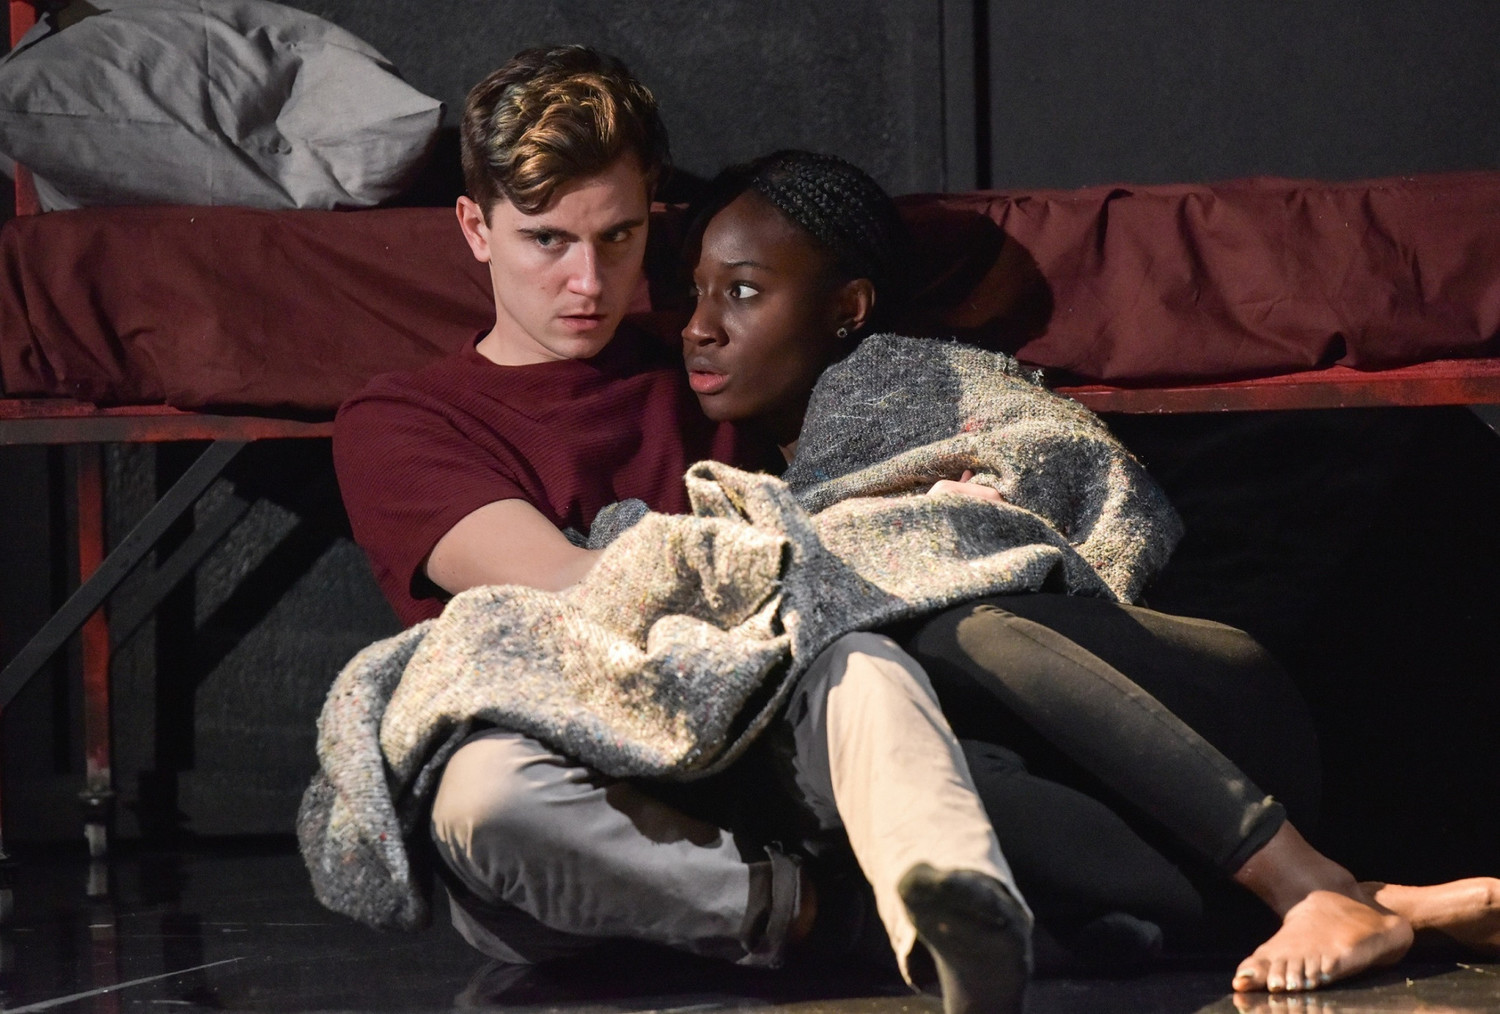 BWW Review: NOUGHTS & CROSSES, York Theatre Royal